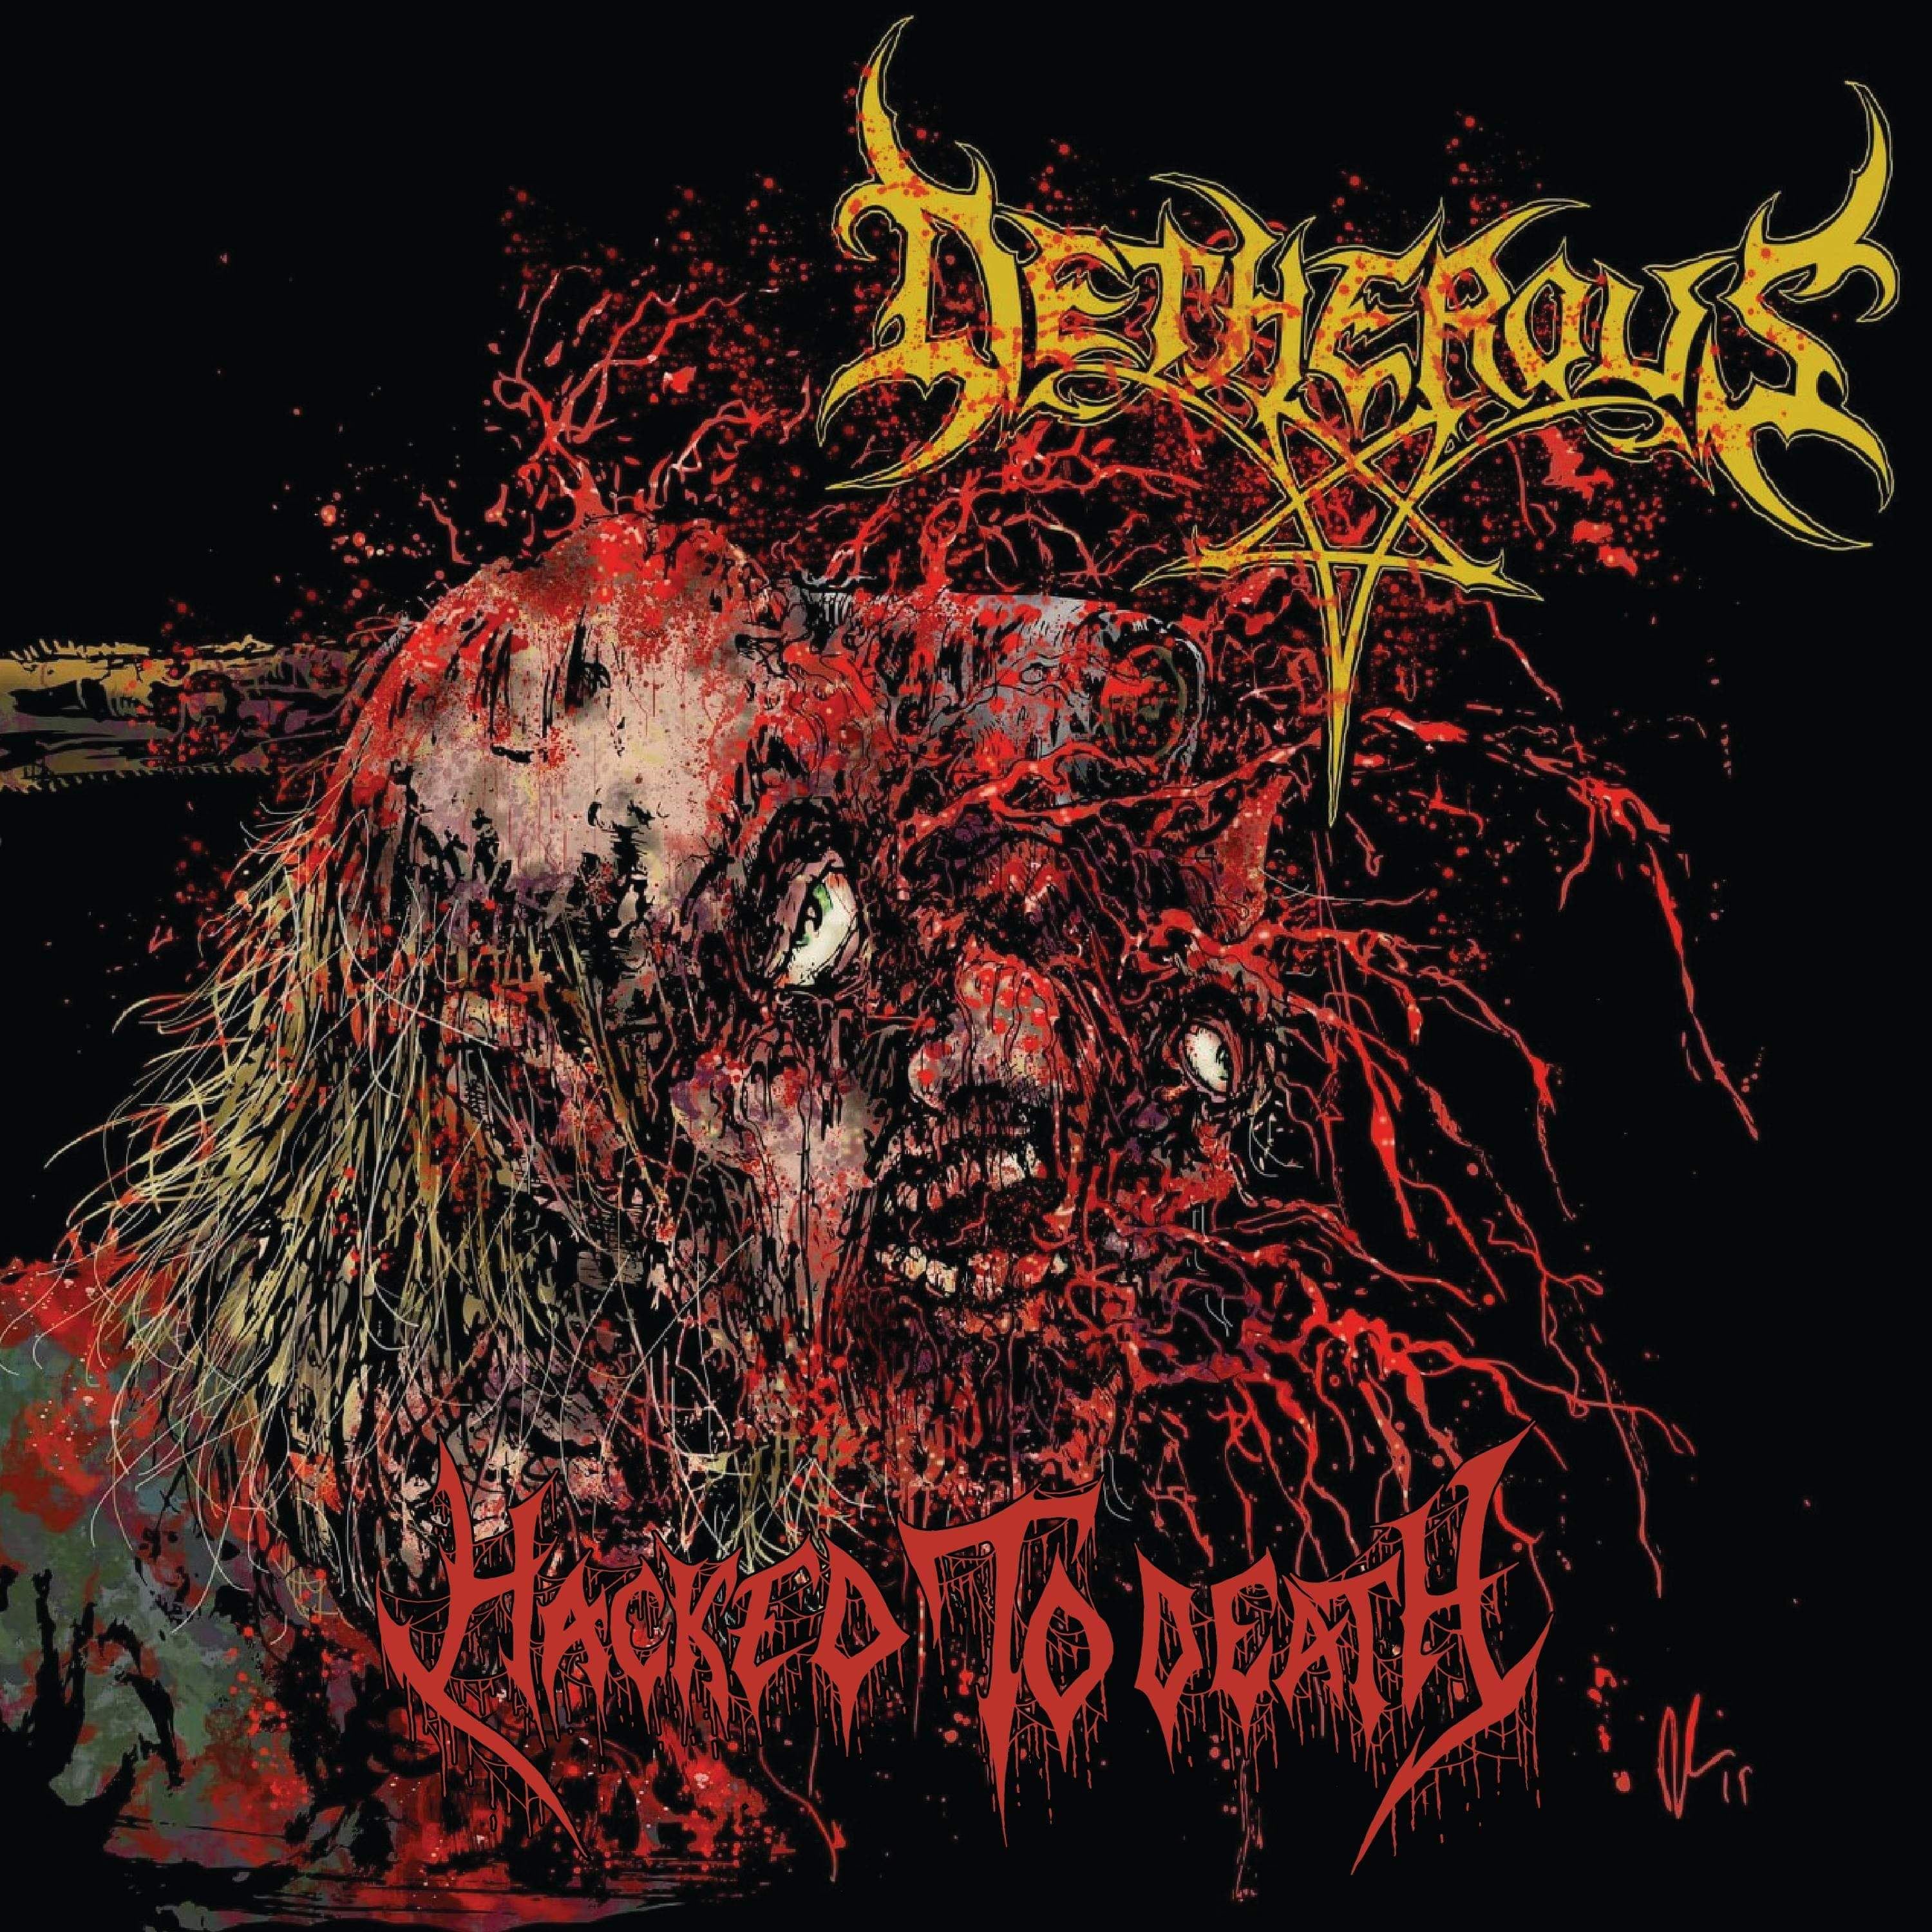 DETHEROUS - Hacked to Death